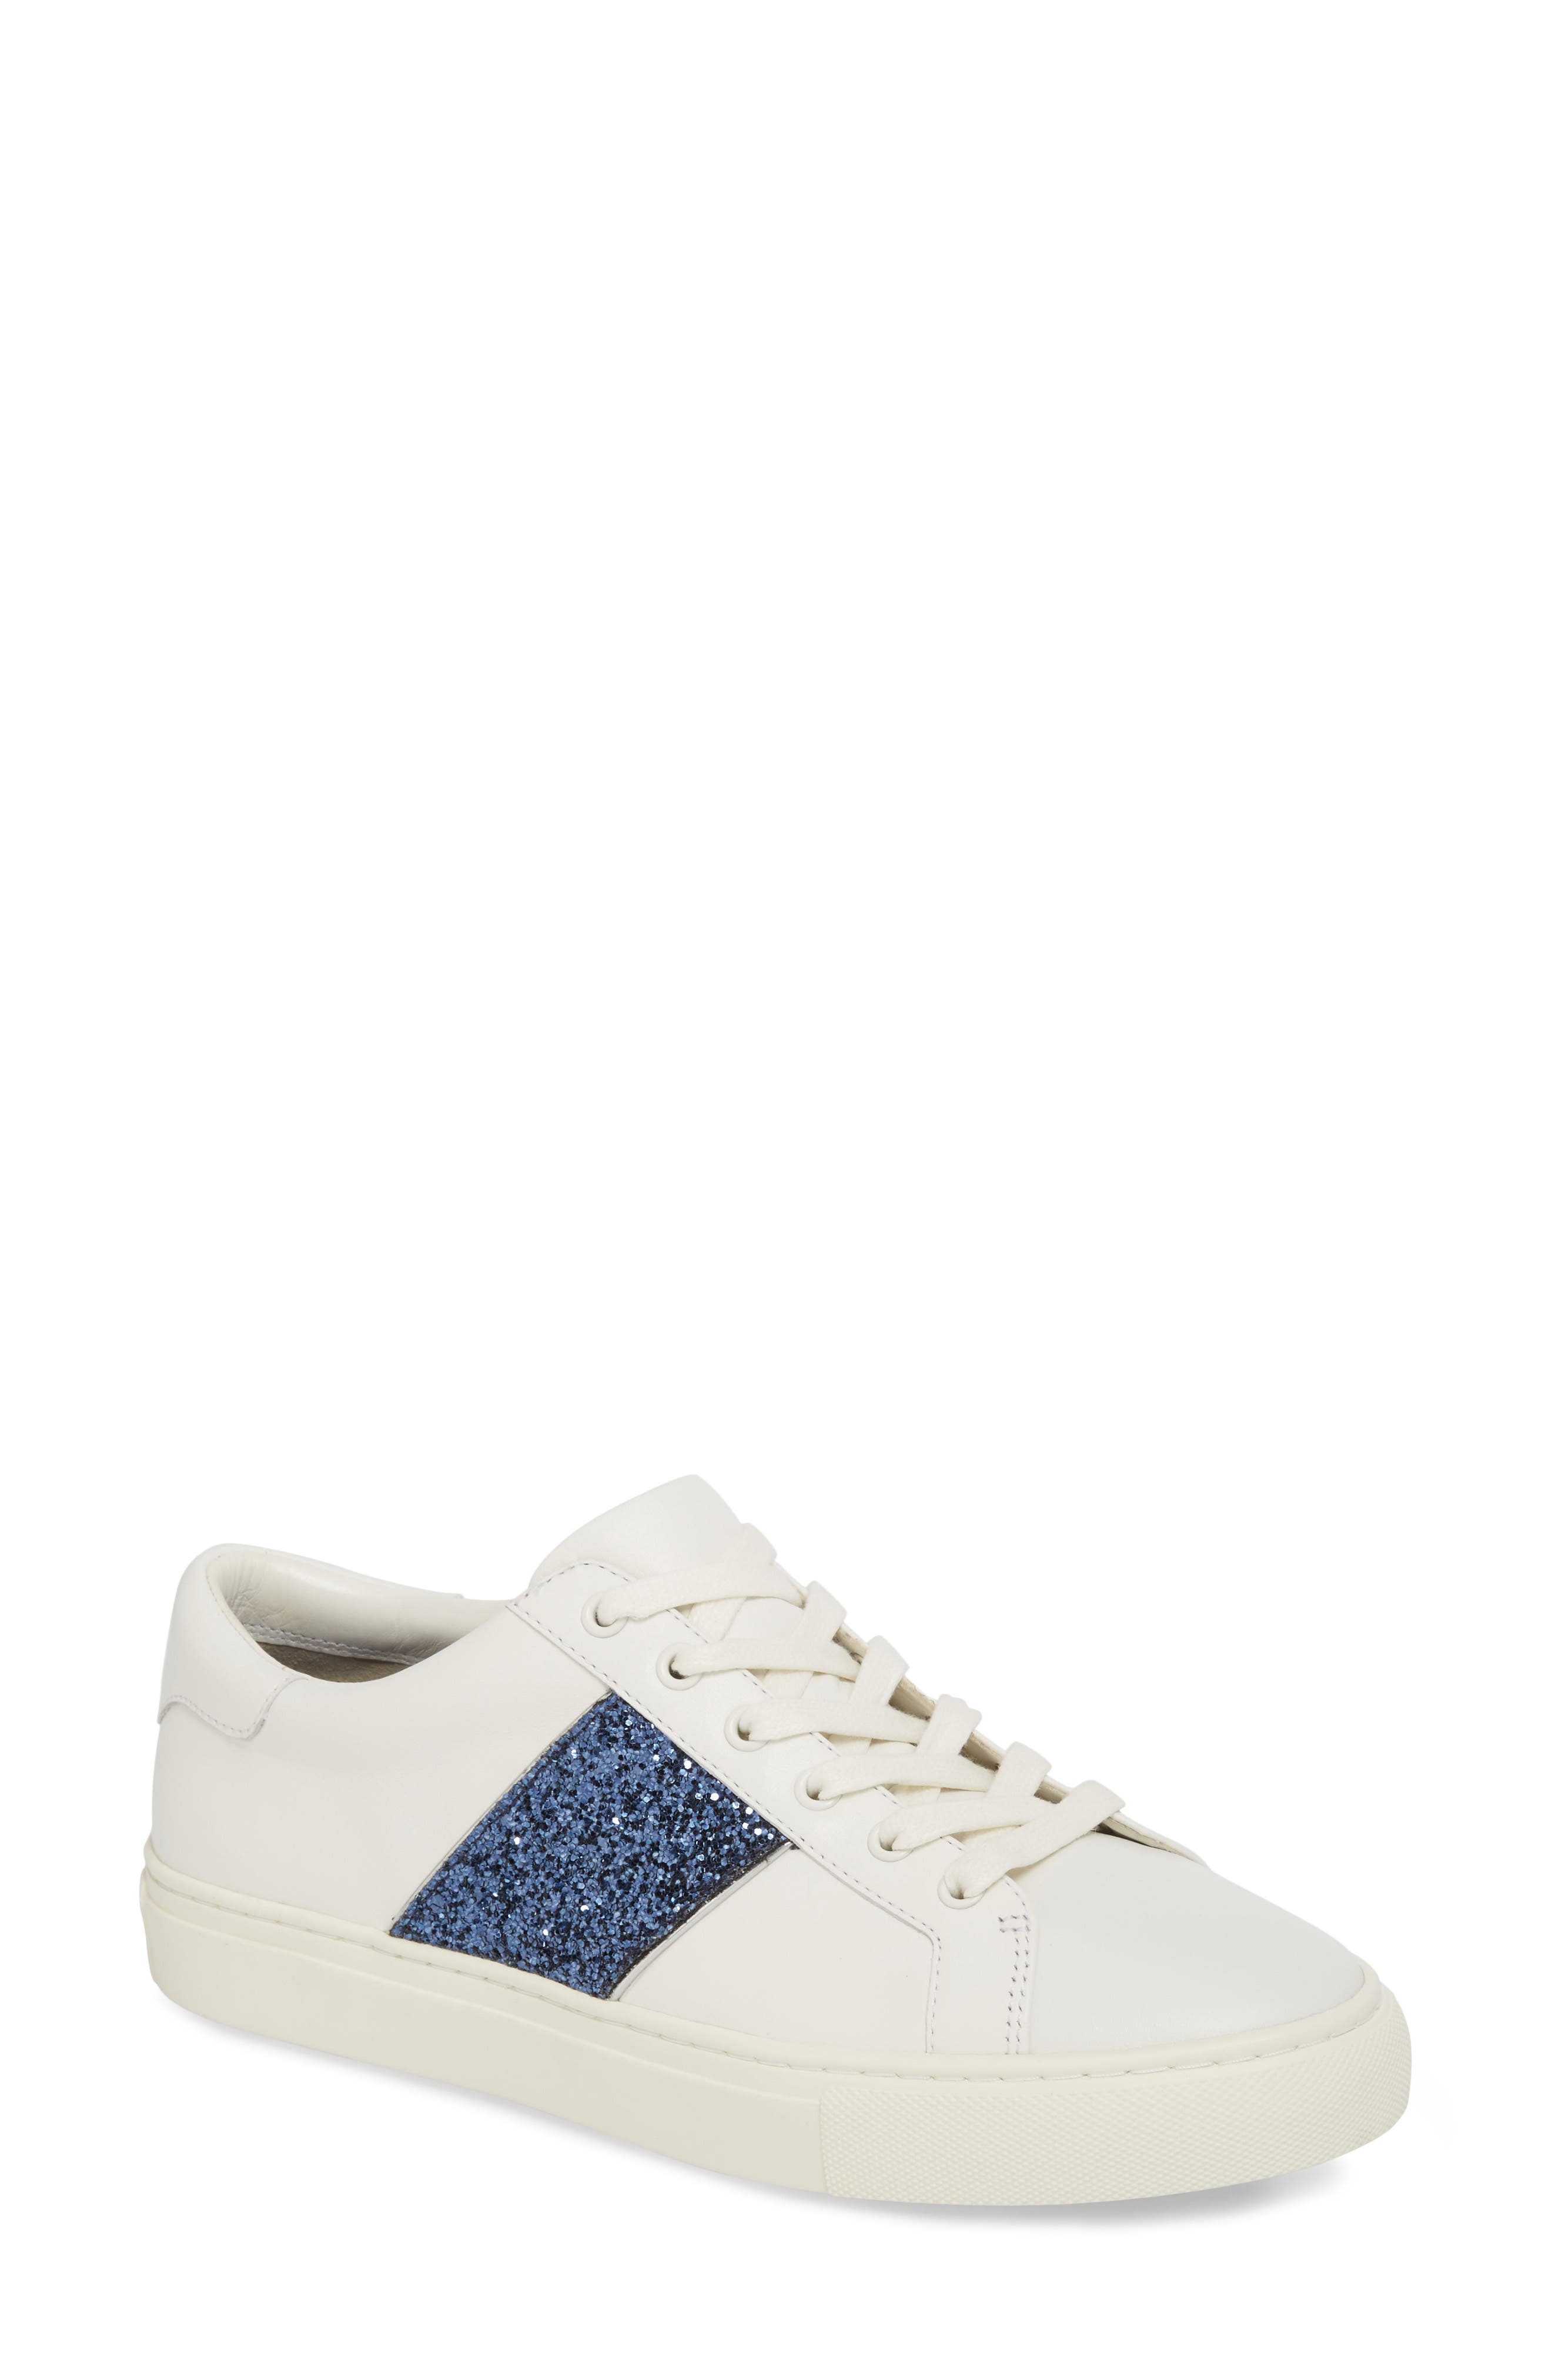 Tory Burch Carter Glitter Sneaker (Women)